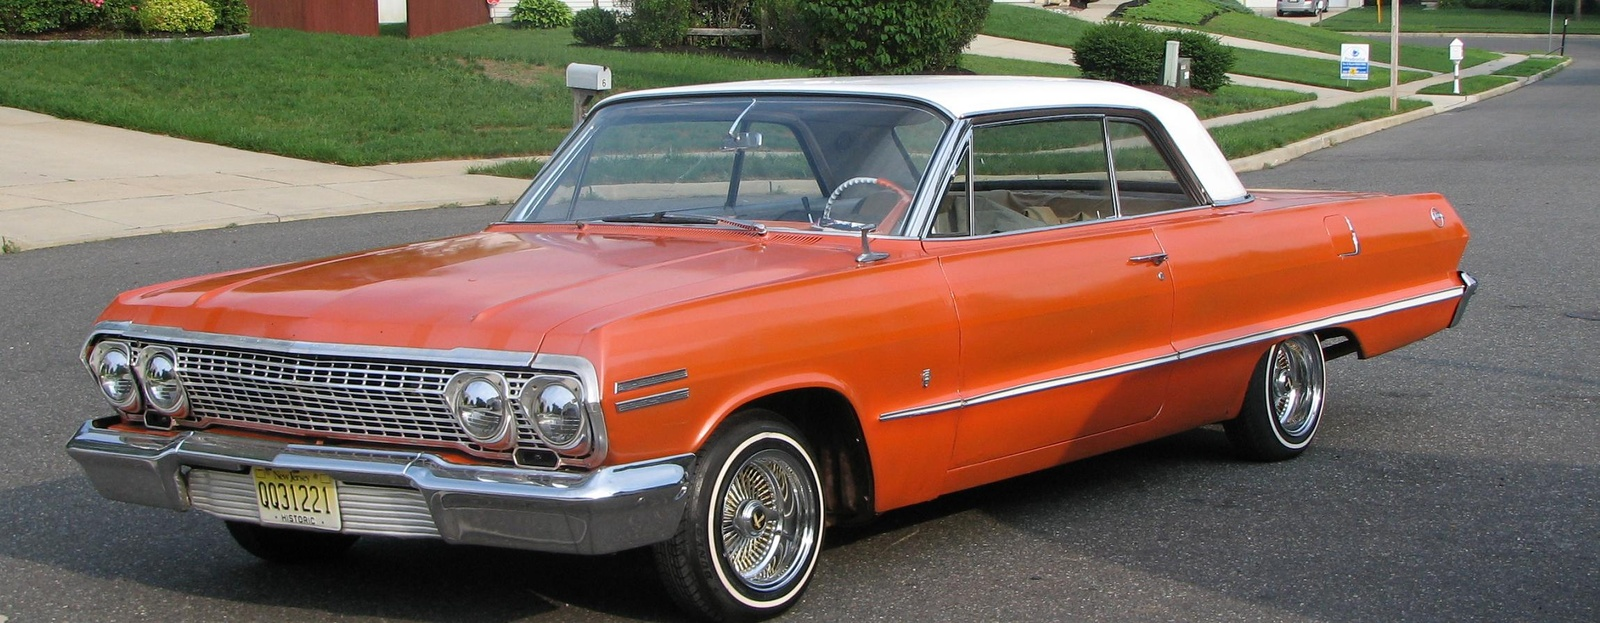 Chevrolet Impala Coupe 1963